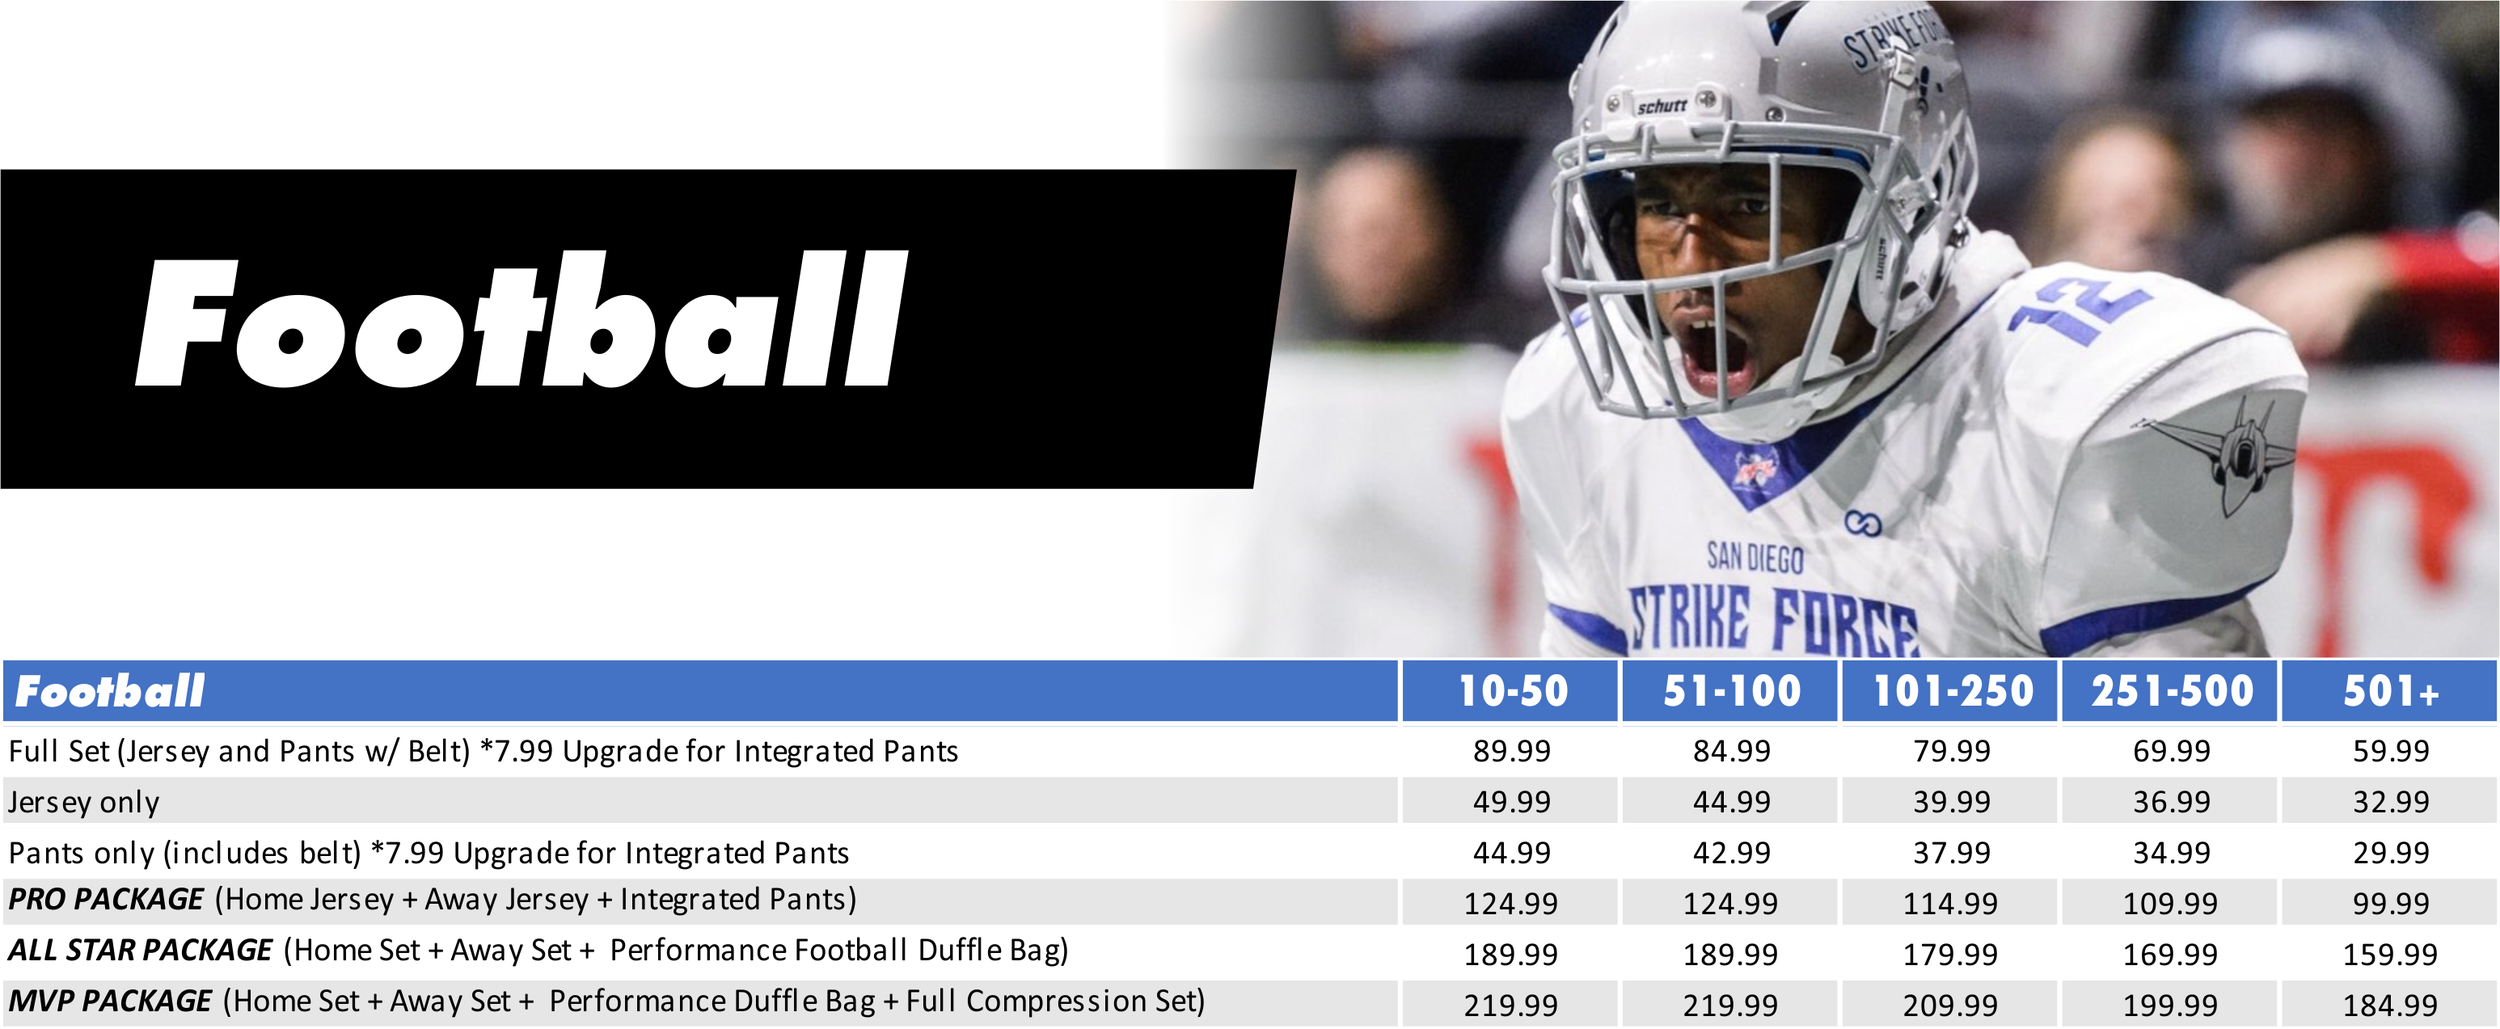 02 Football wooterapparel pricing.png